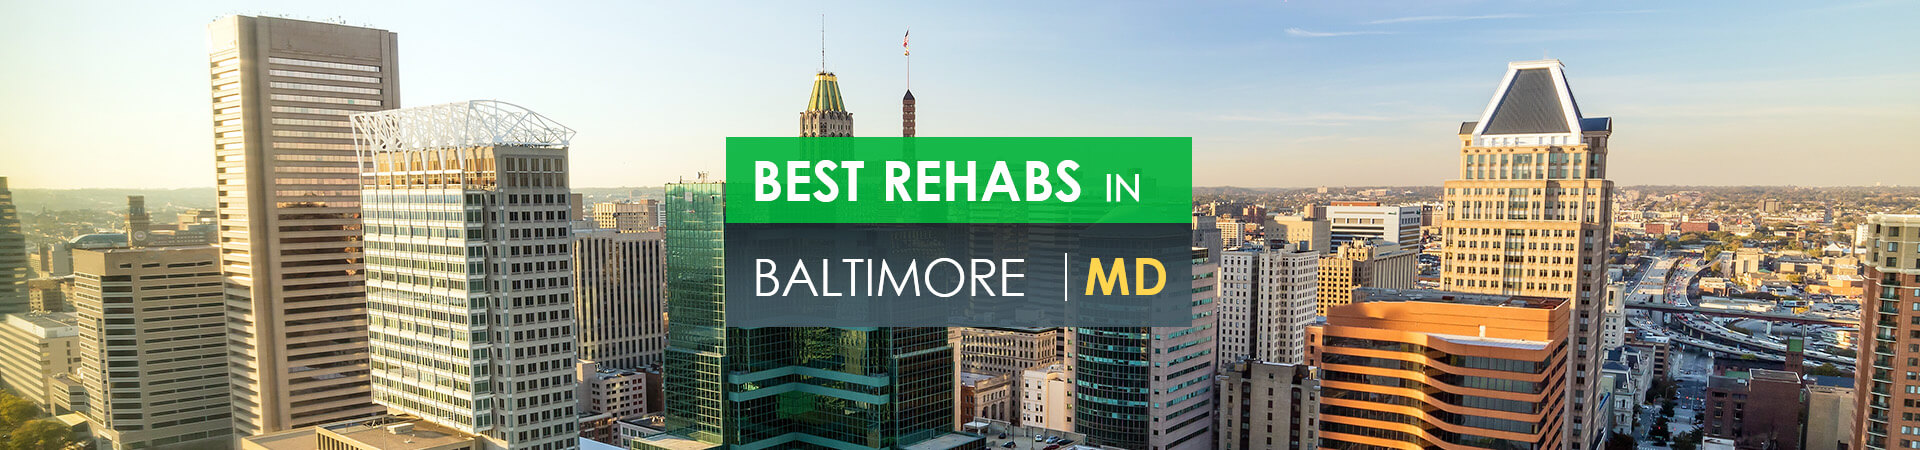 Best rehabs in Baltimore, MD